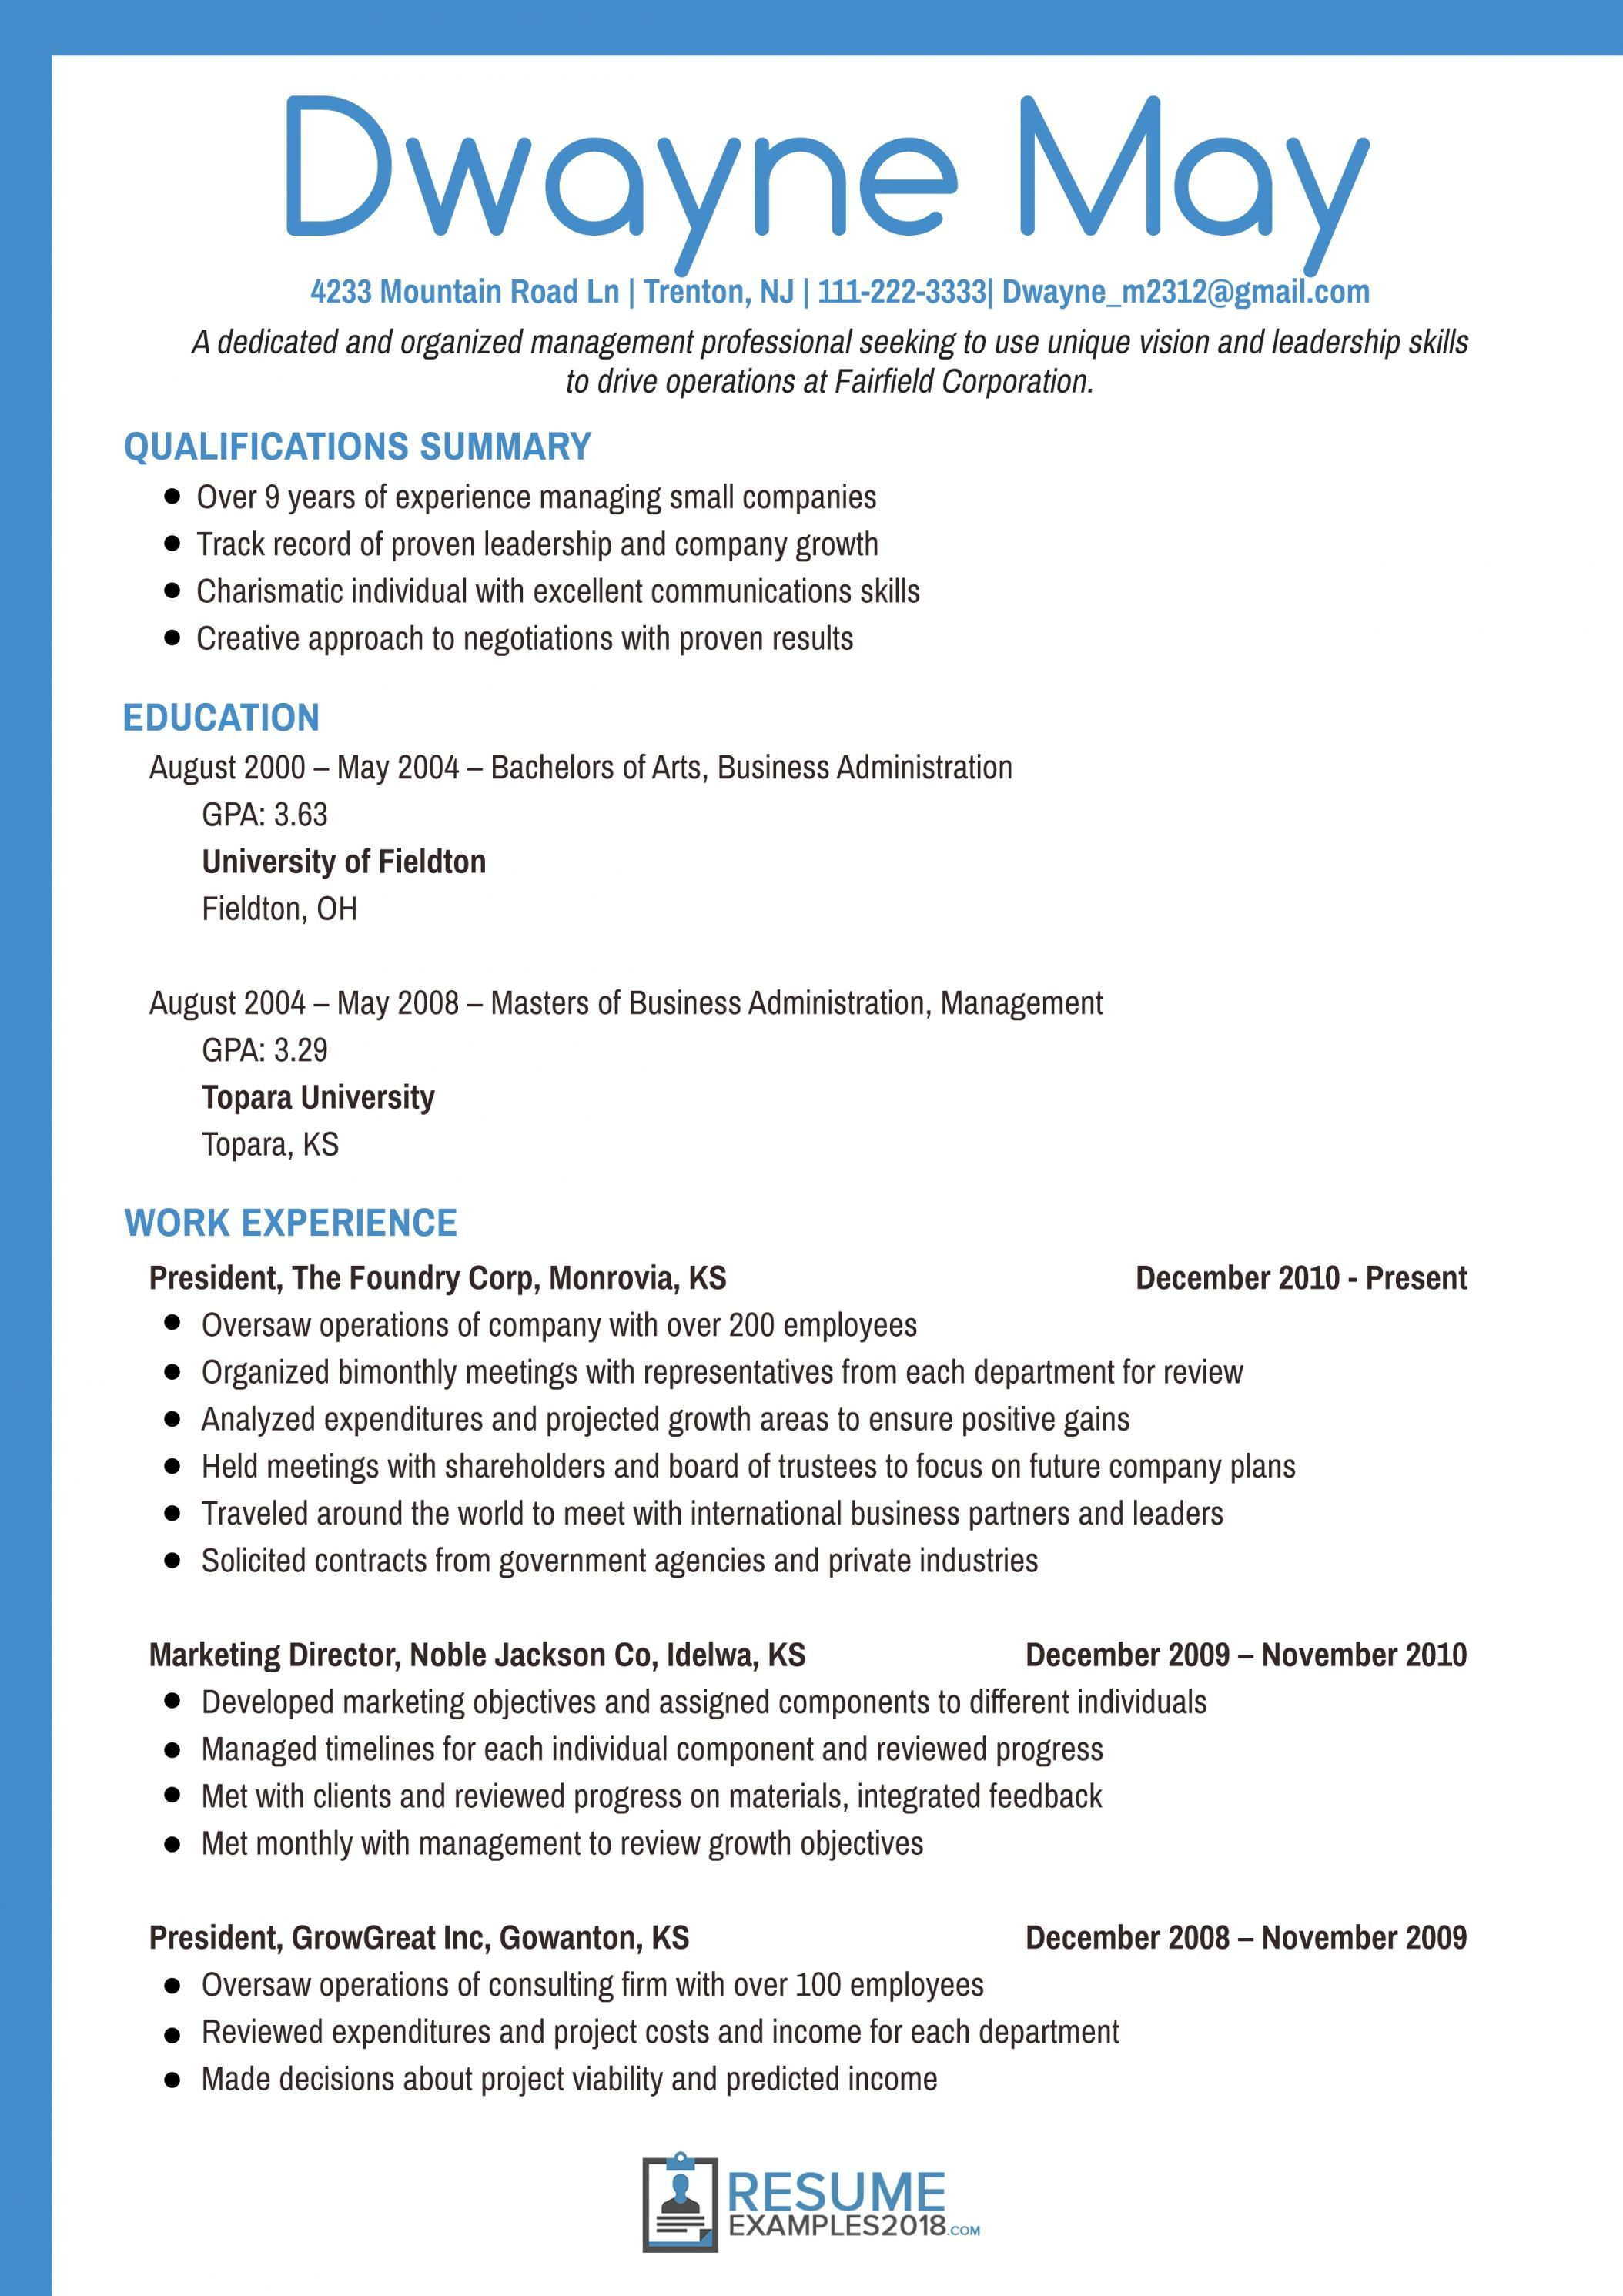 Resume Examples Me Nbspthis Website Is For Sale Nbspresume Examples Resources And Information Arts Education Quotes Positive Quotes For Work Motivational Quotes For Employees